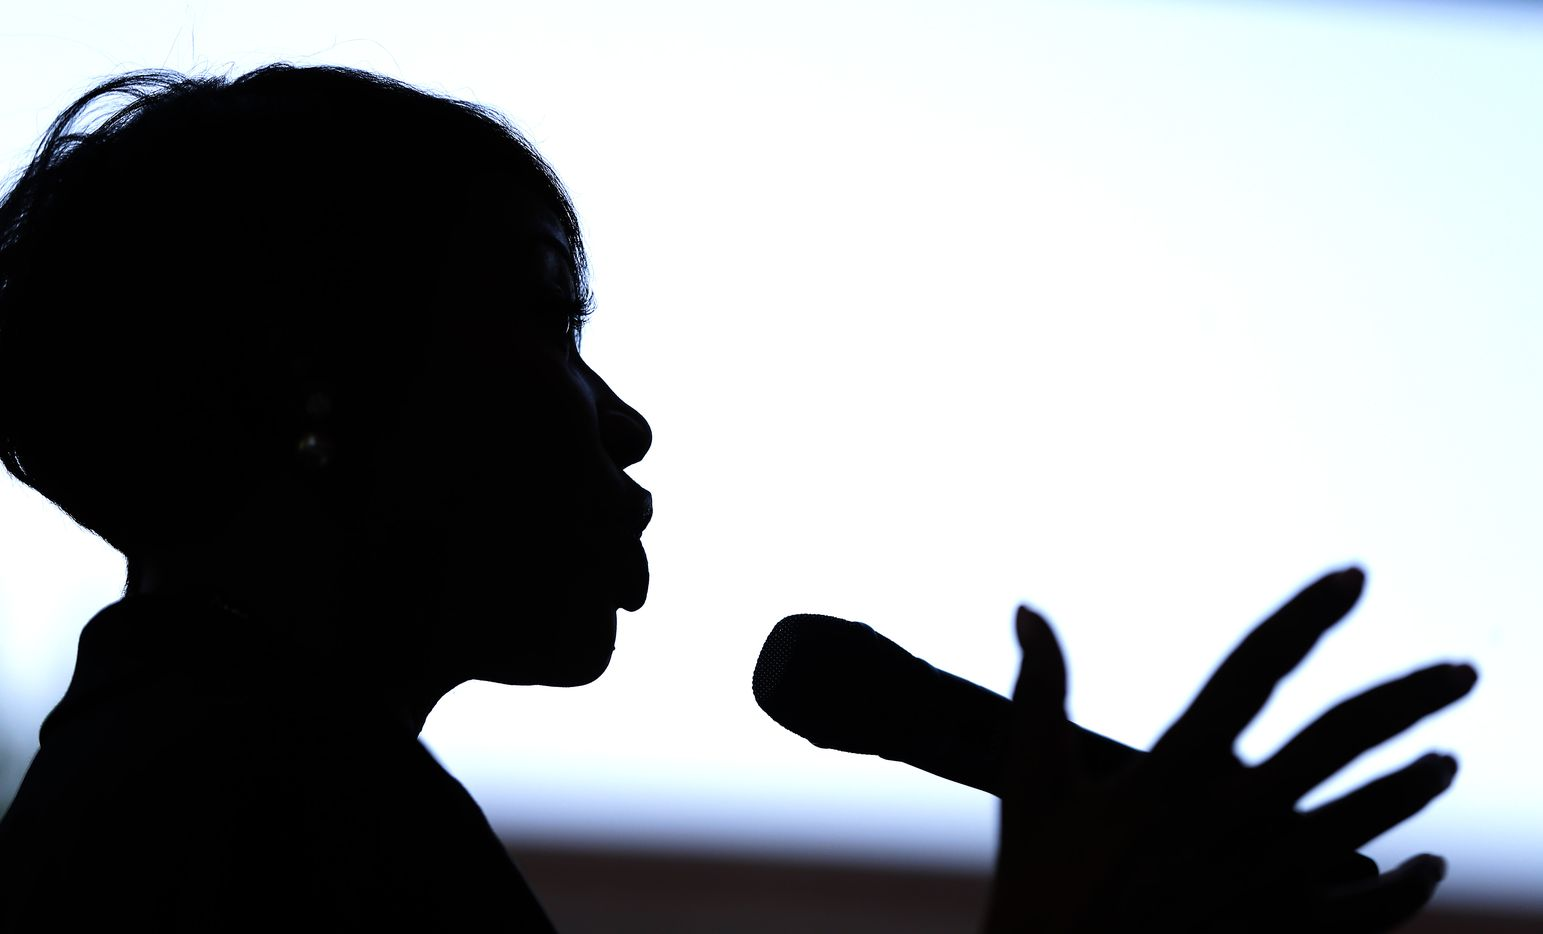 New Dallas Police Chief U. Renee Hall is silhouetted while she speaks to the crowd during a meet-and-greet reception Monday in Dallas.